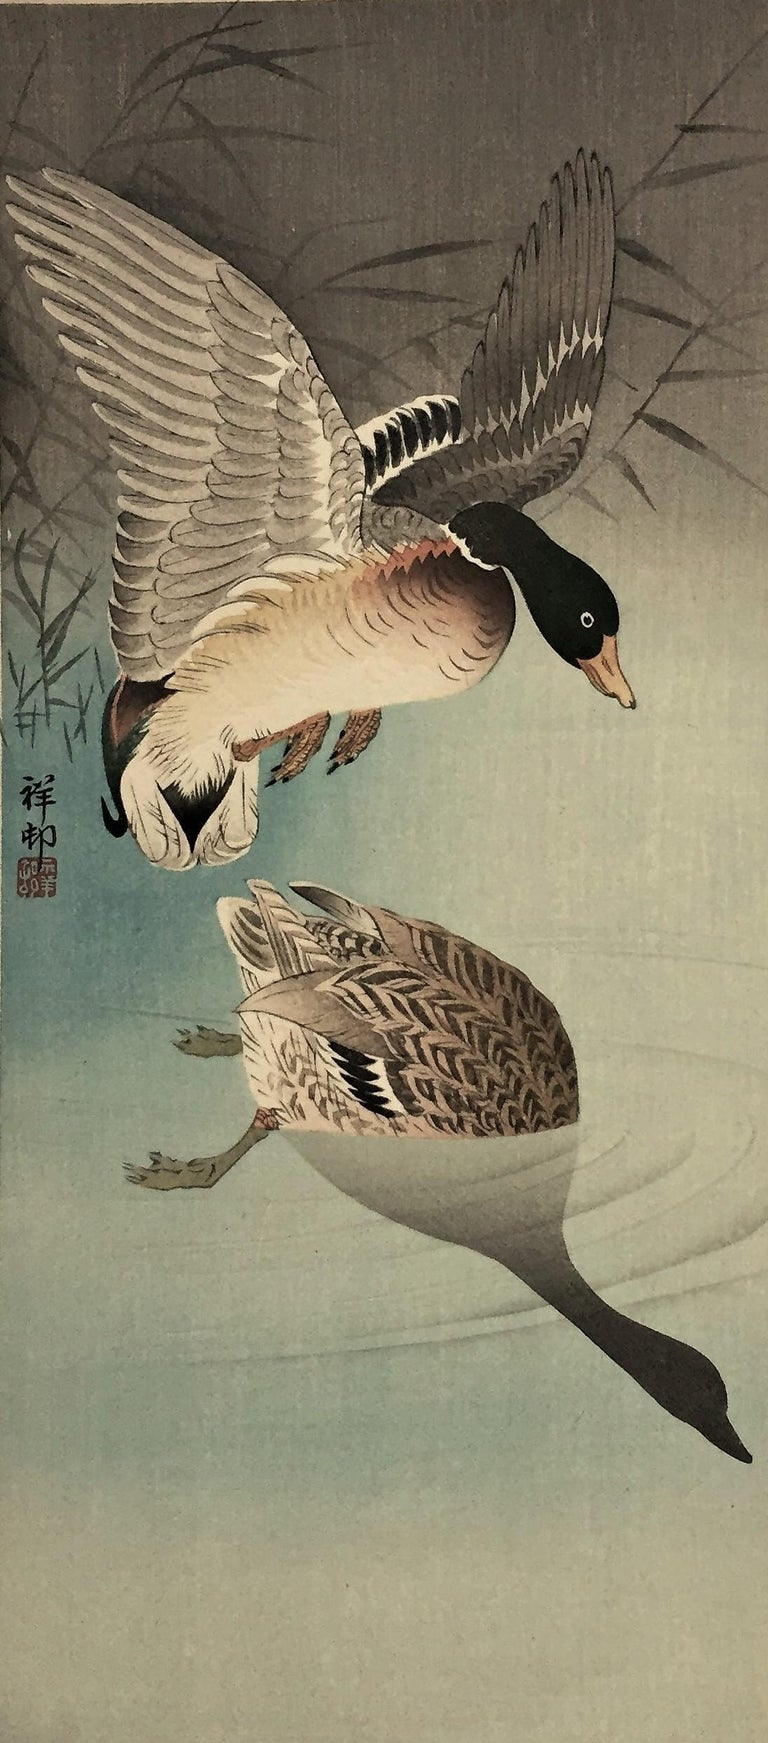 Ohara Koson Animal Print - Two Wild Ducks in Flight Above Reeds, a Full Moon Behind.